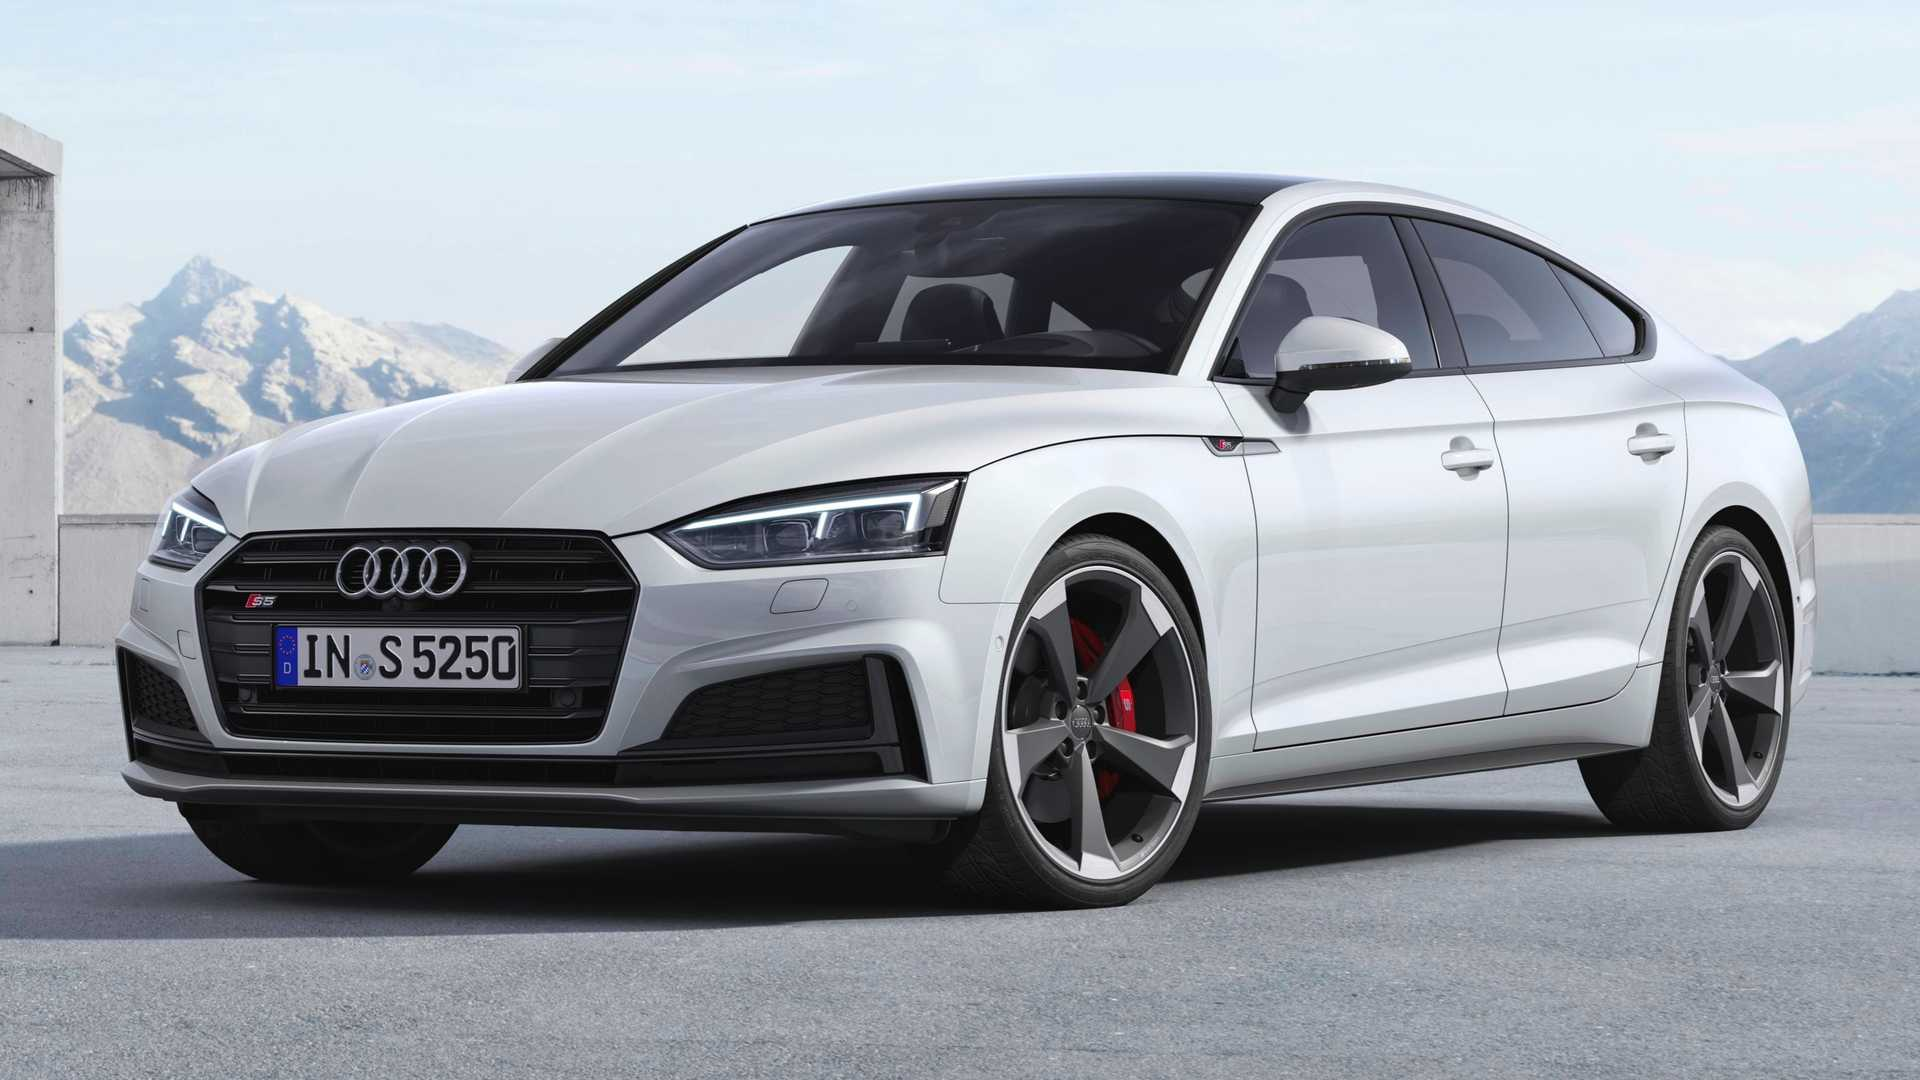 34 The Best 2020 Audi S5 Price And Release Date